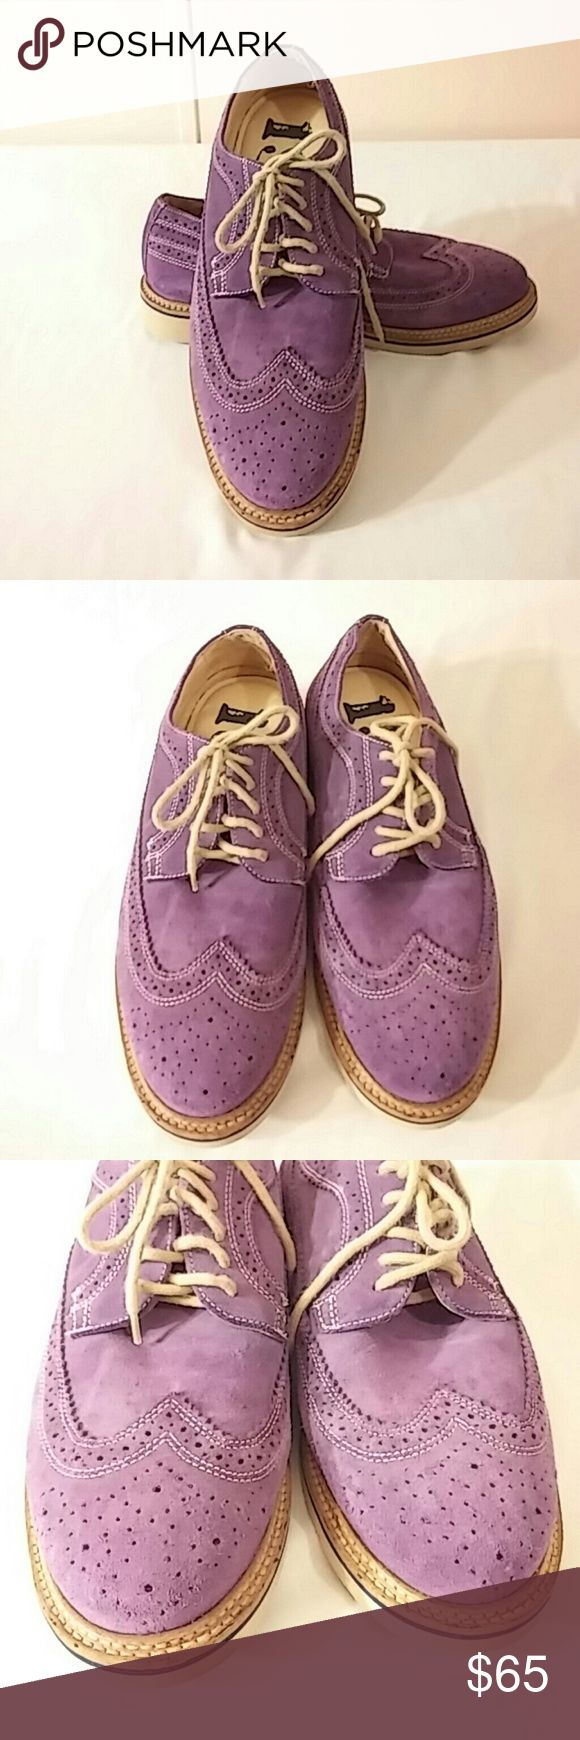 Purple Suede Leather Wing Tip Oxfords Men's 7.5 M Men's 7.5 M, purple suede wing tip oxfords.  The footbed is marked 1901.  I don't think they have been worn, but saying used in excellent condition. 1901 Shoes Oxfords & Derbys